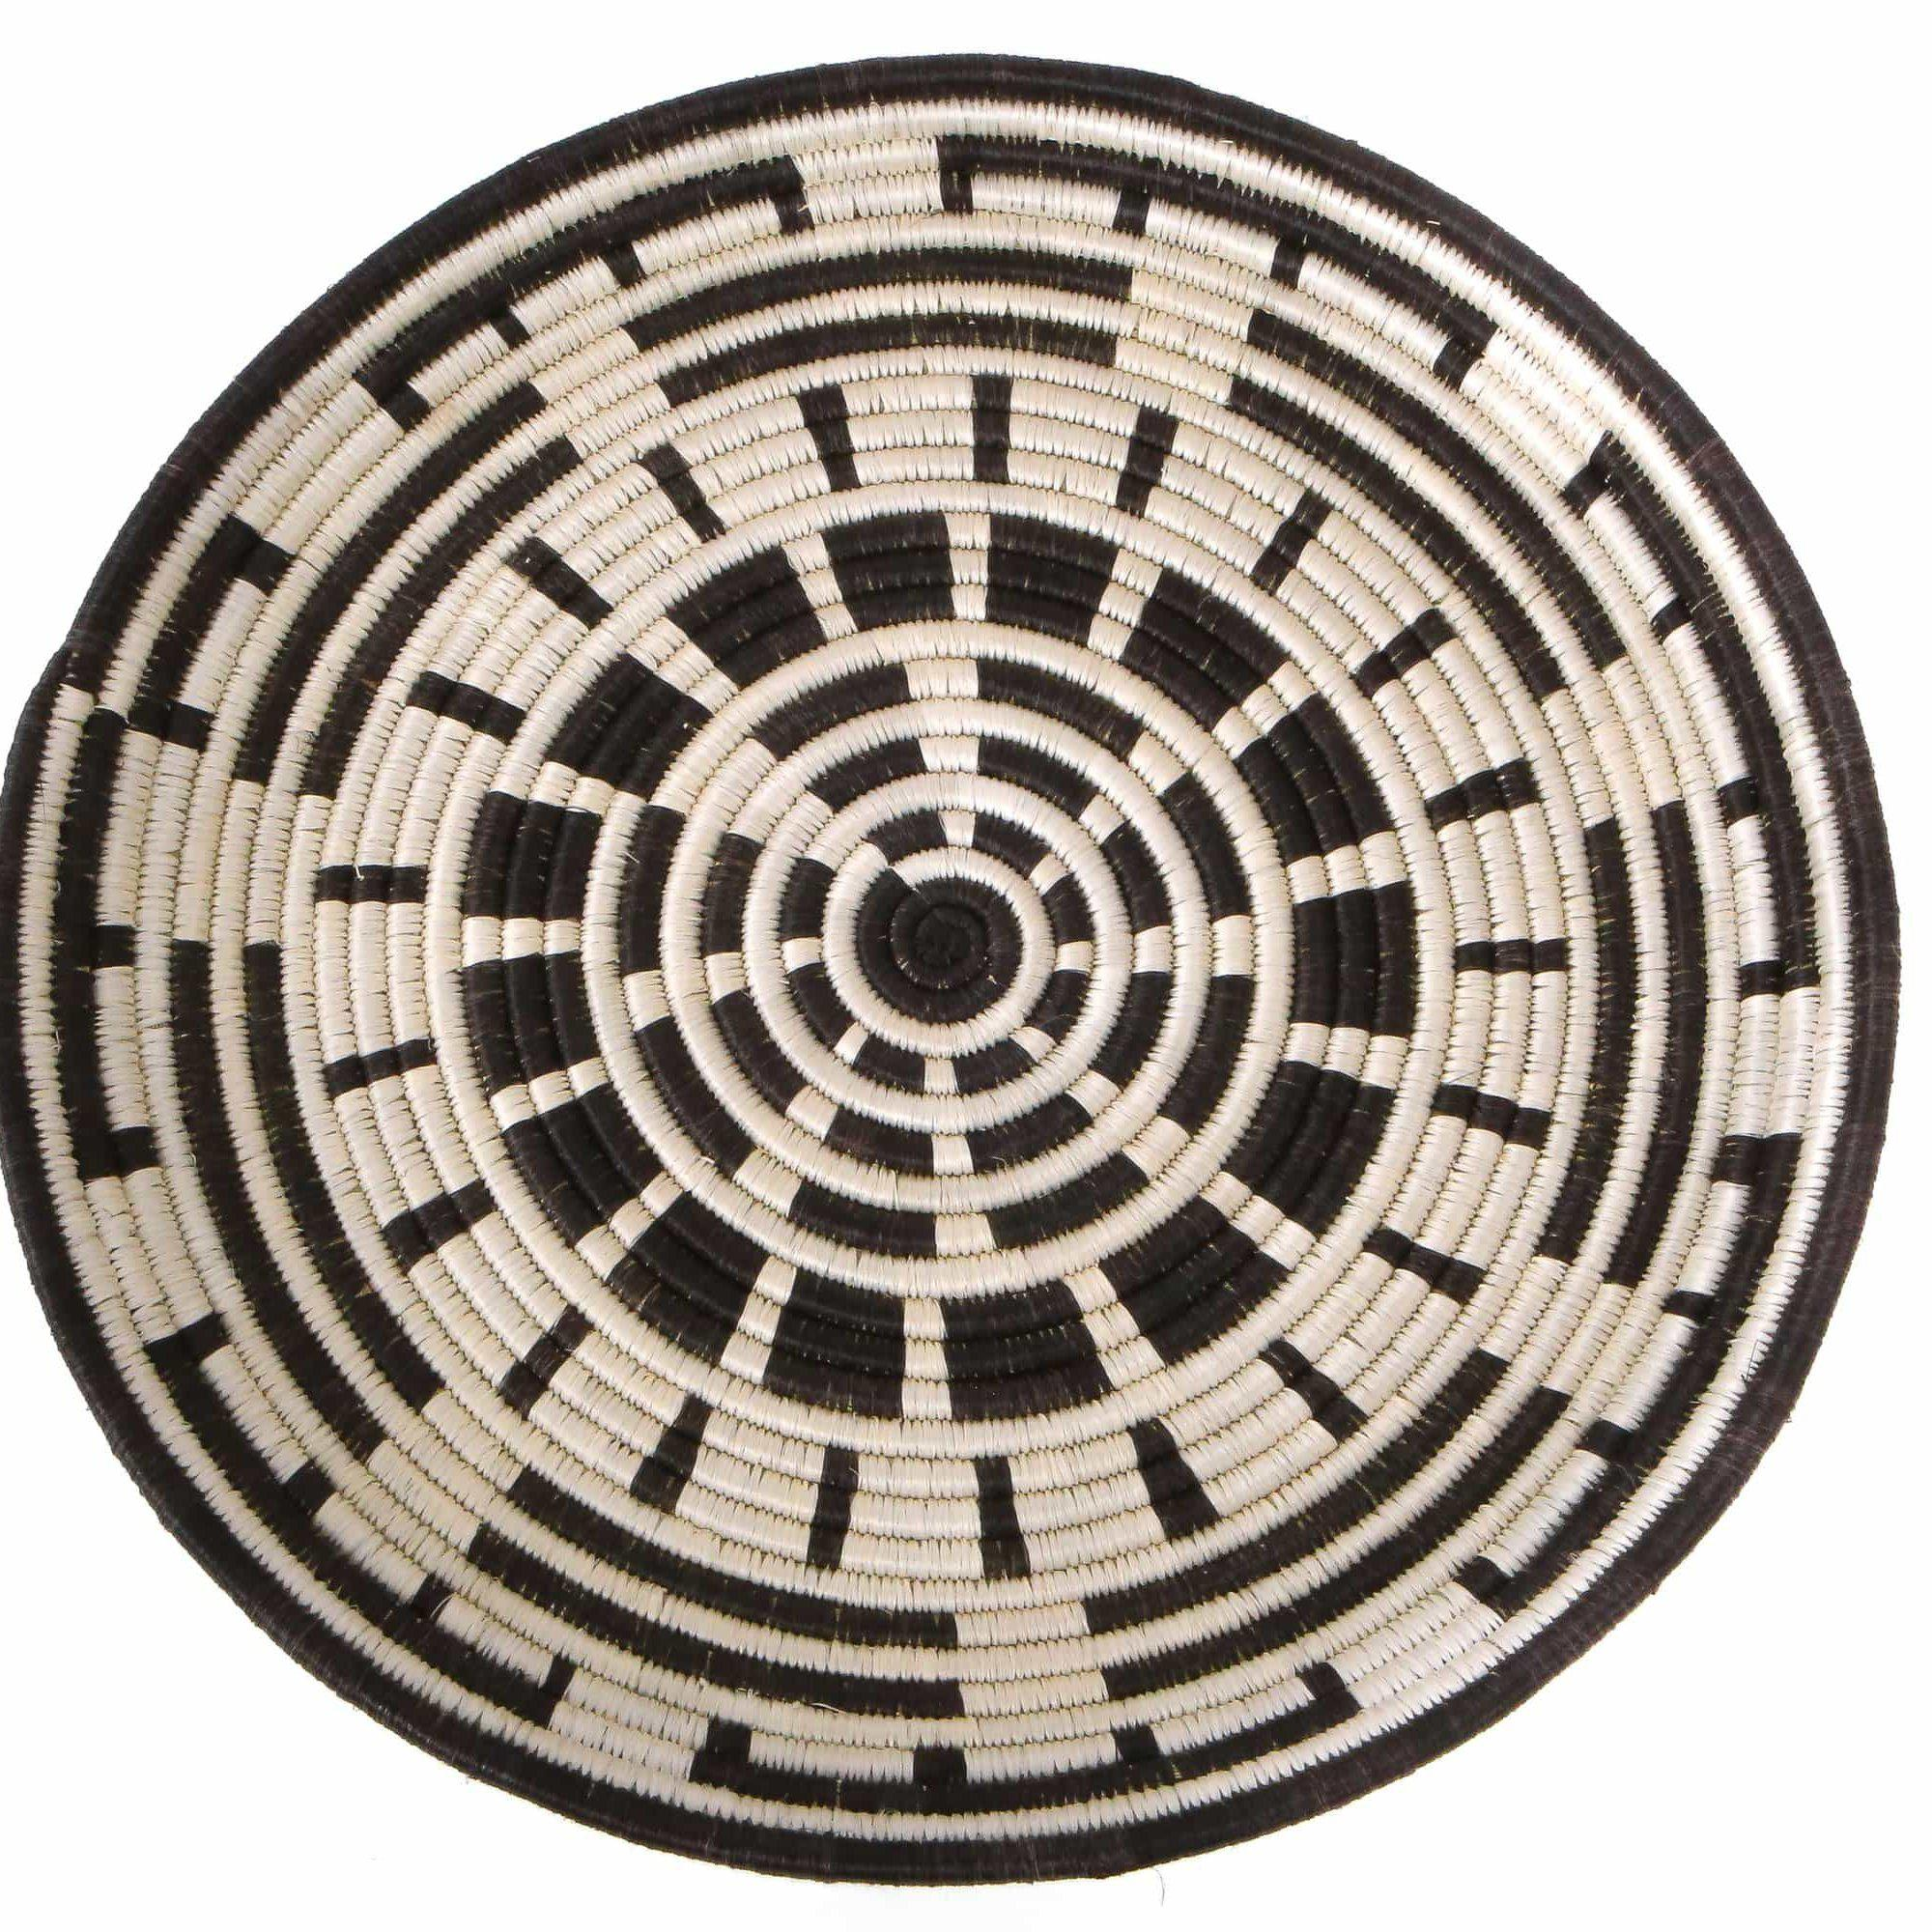 Black Geo Wall Plate Decor | woven wall baskets | rattan wall decor | decorative plate | boho wall decor | plate decor | wall decor | wall art | home decor | african